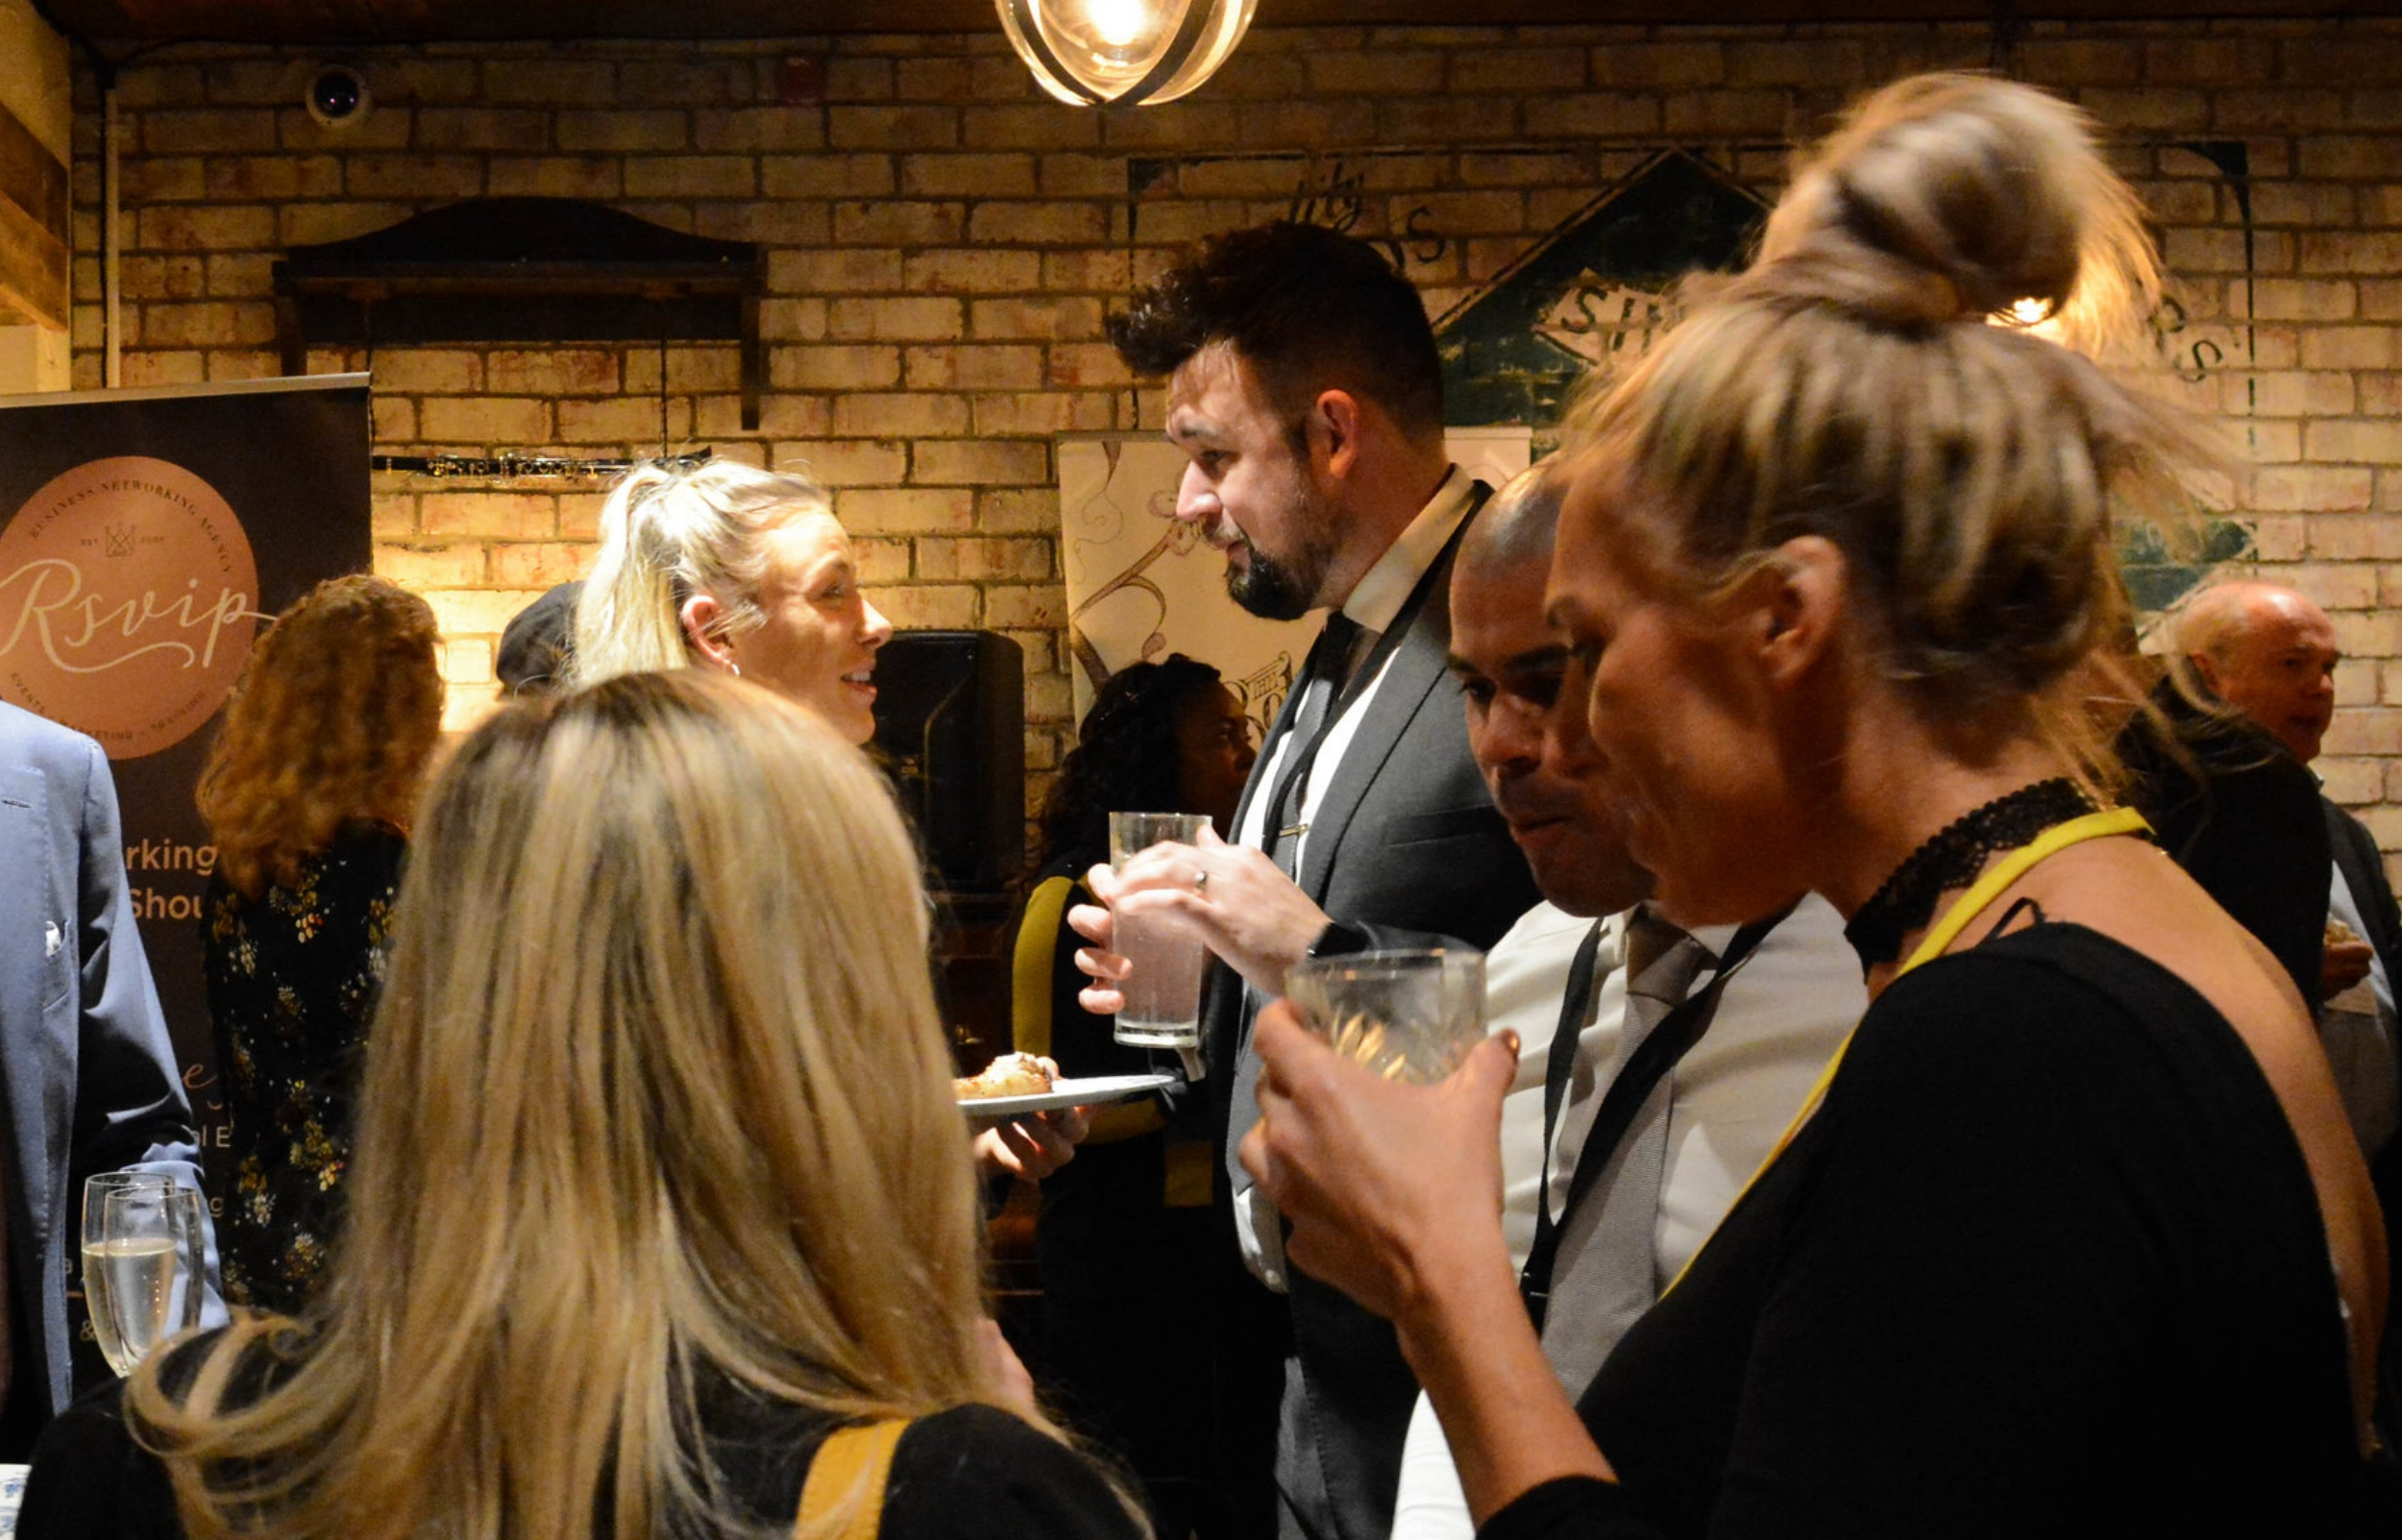 Discussing the benefits of yoga for busy professionals at the  RSViP  business networking event in Nottingham. Image Credit - Steve Edwards  Autoholic Photography